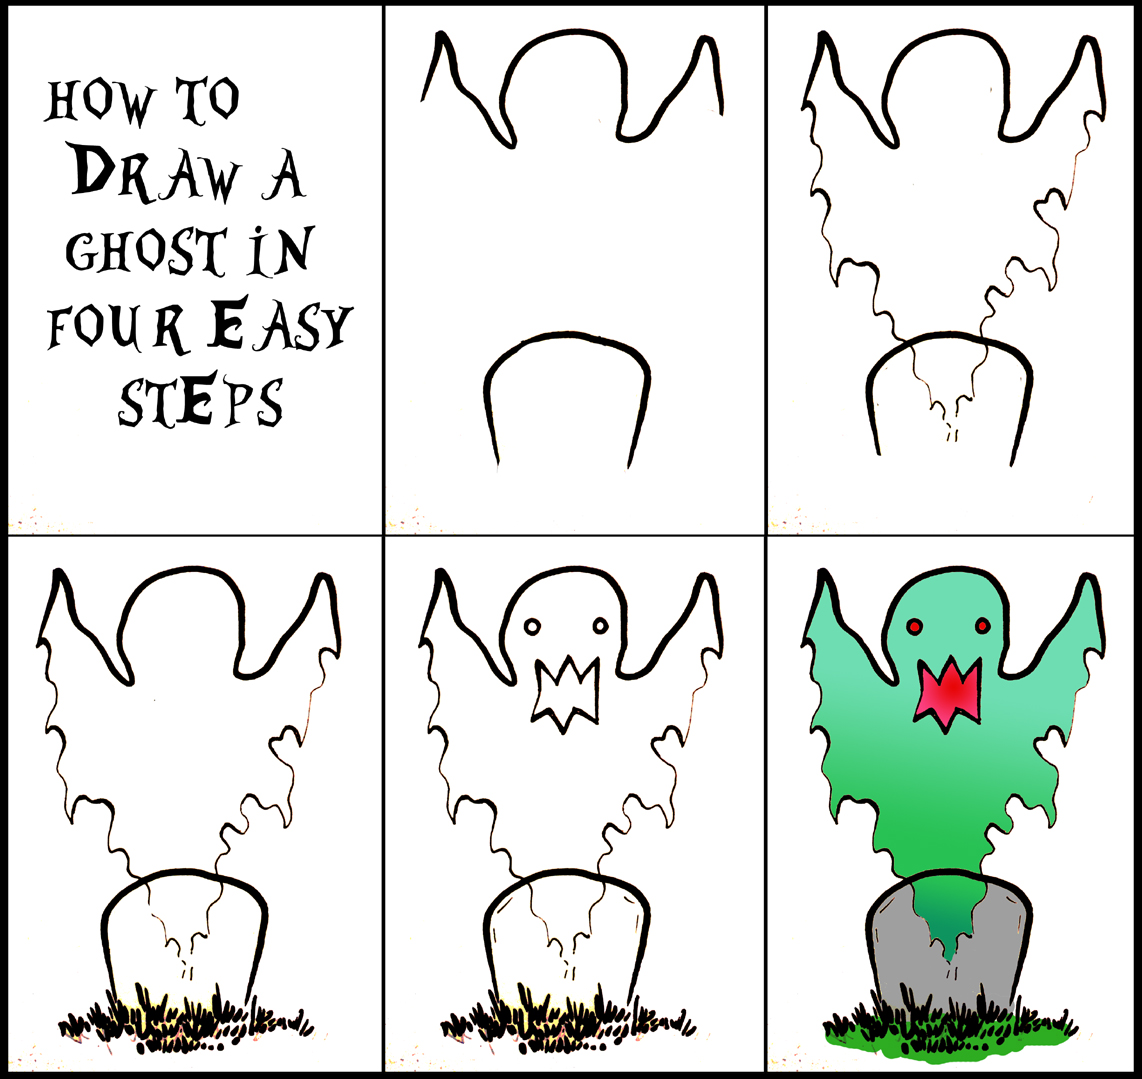 Uncategorized Easy Halloween Drawings Step Step halloween art how to draw a ghost 4 steps daryl hobson artwork steps